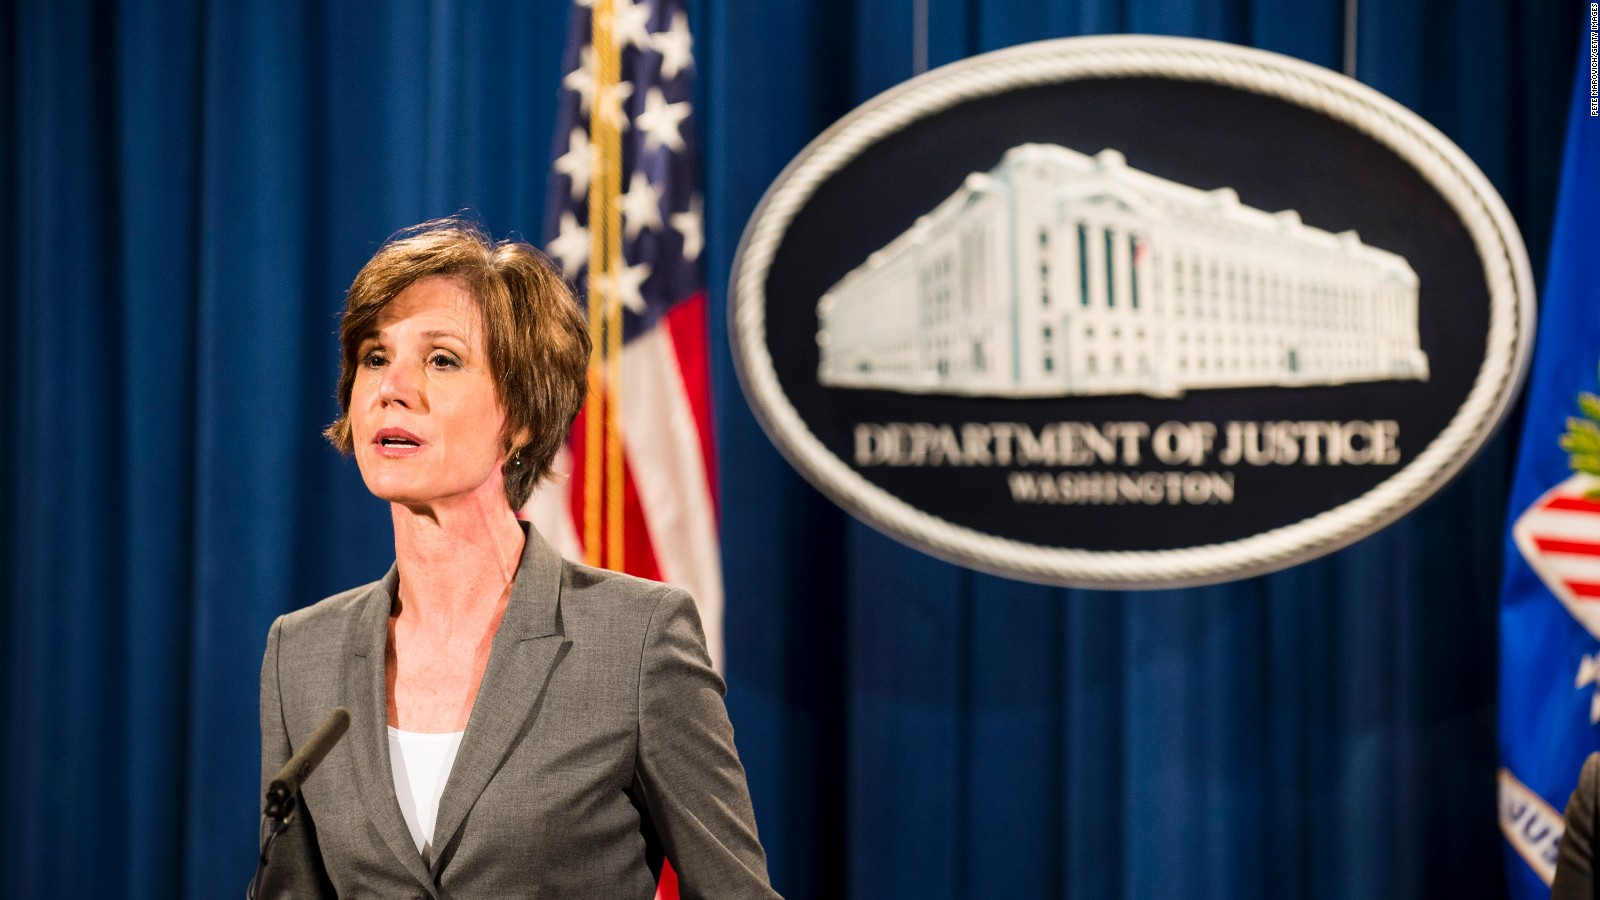 us attorney job description the justice department. Resume Example. Resume CV Cover Letter